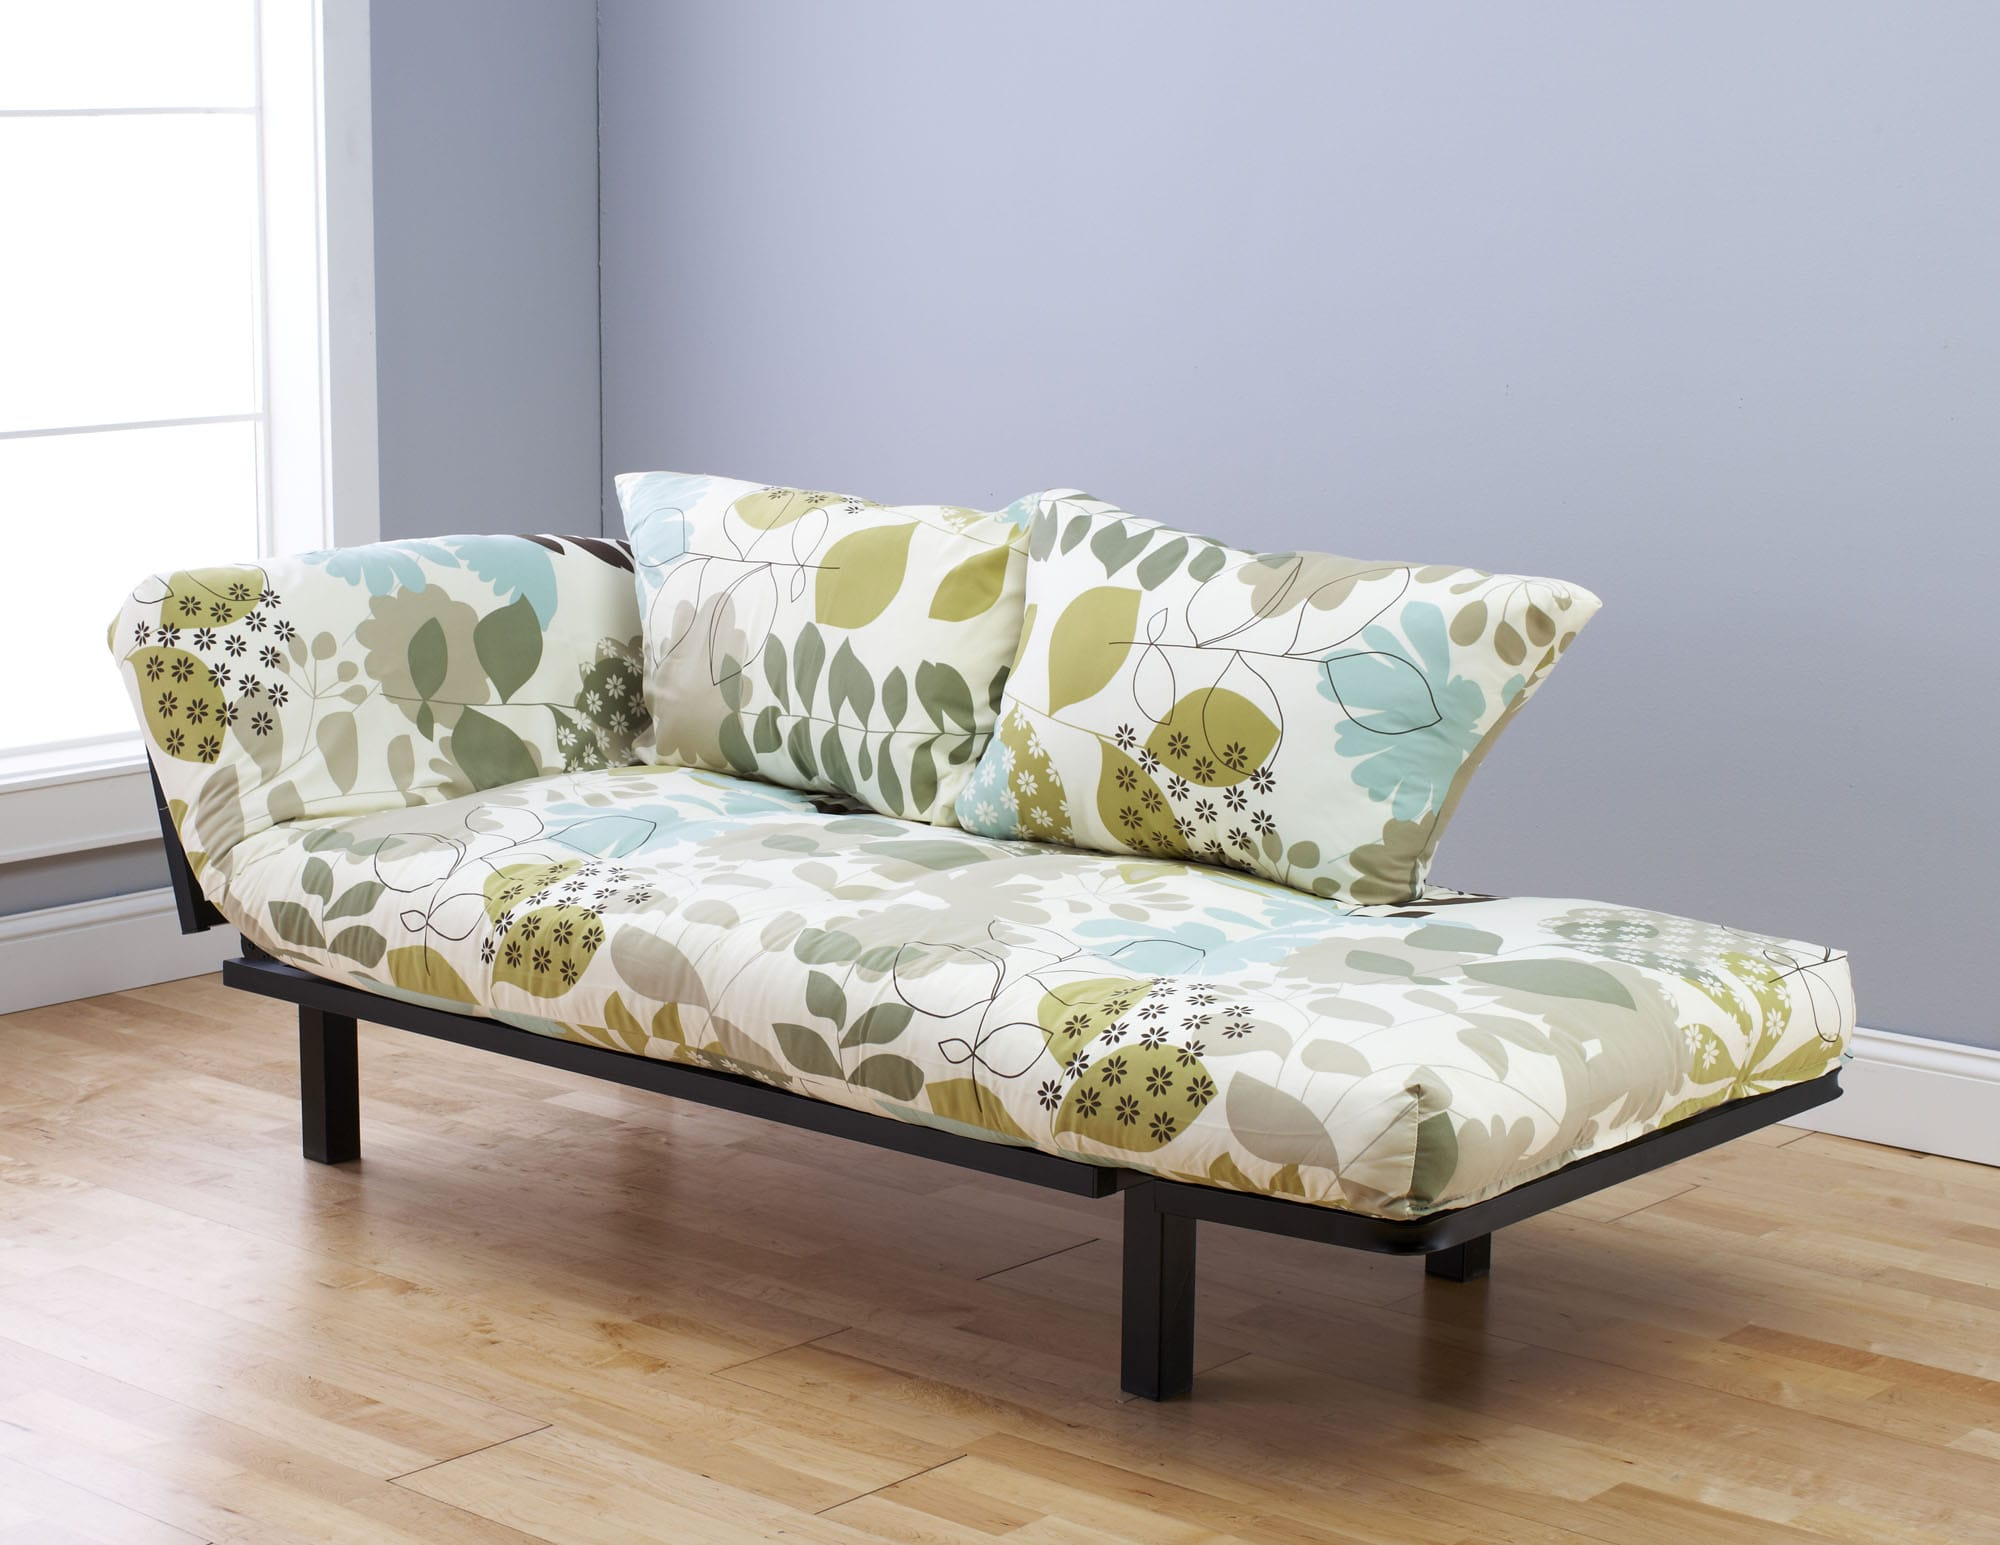 metal chair covers crate and barrel dining chairs spacely futon daybed/lounger with mattress english garden by kodiak